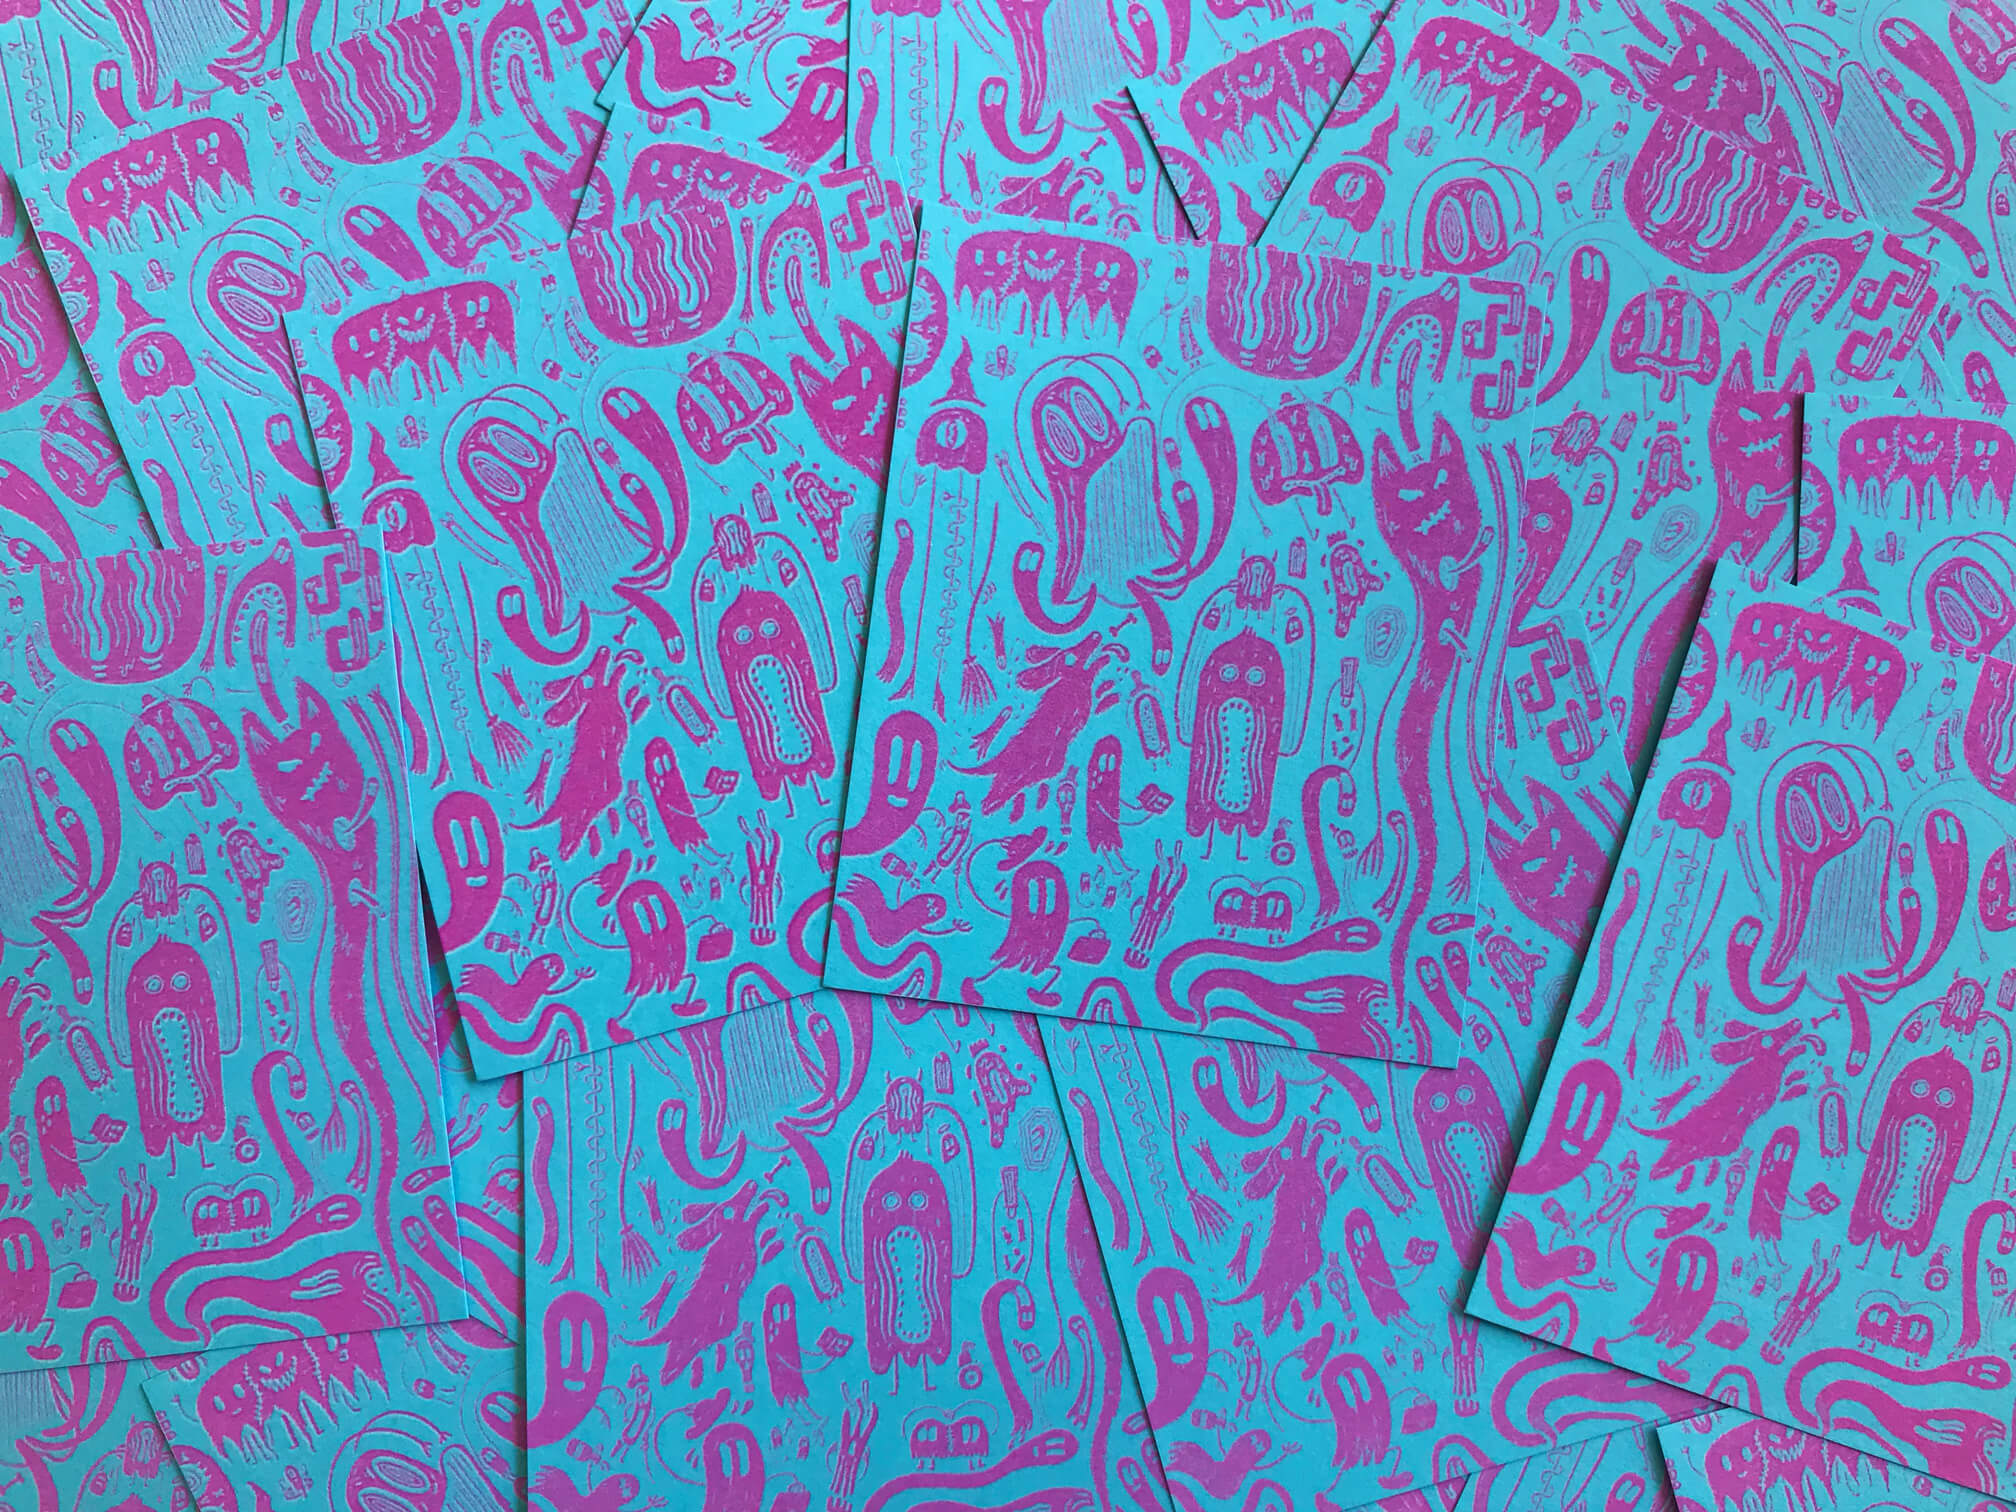 Mostly Ghostly Mini Risograph Print – Neon Blue & Shocking Pink